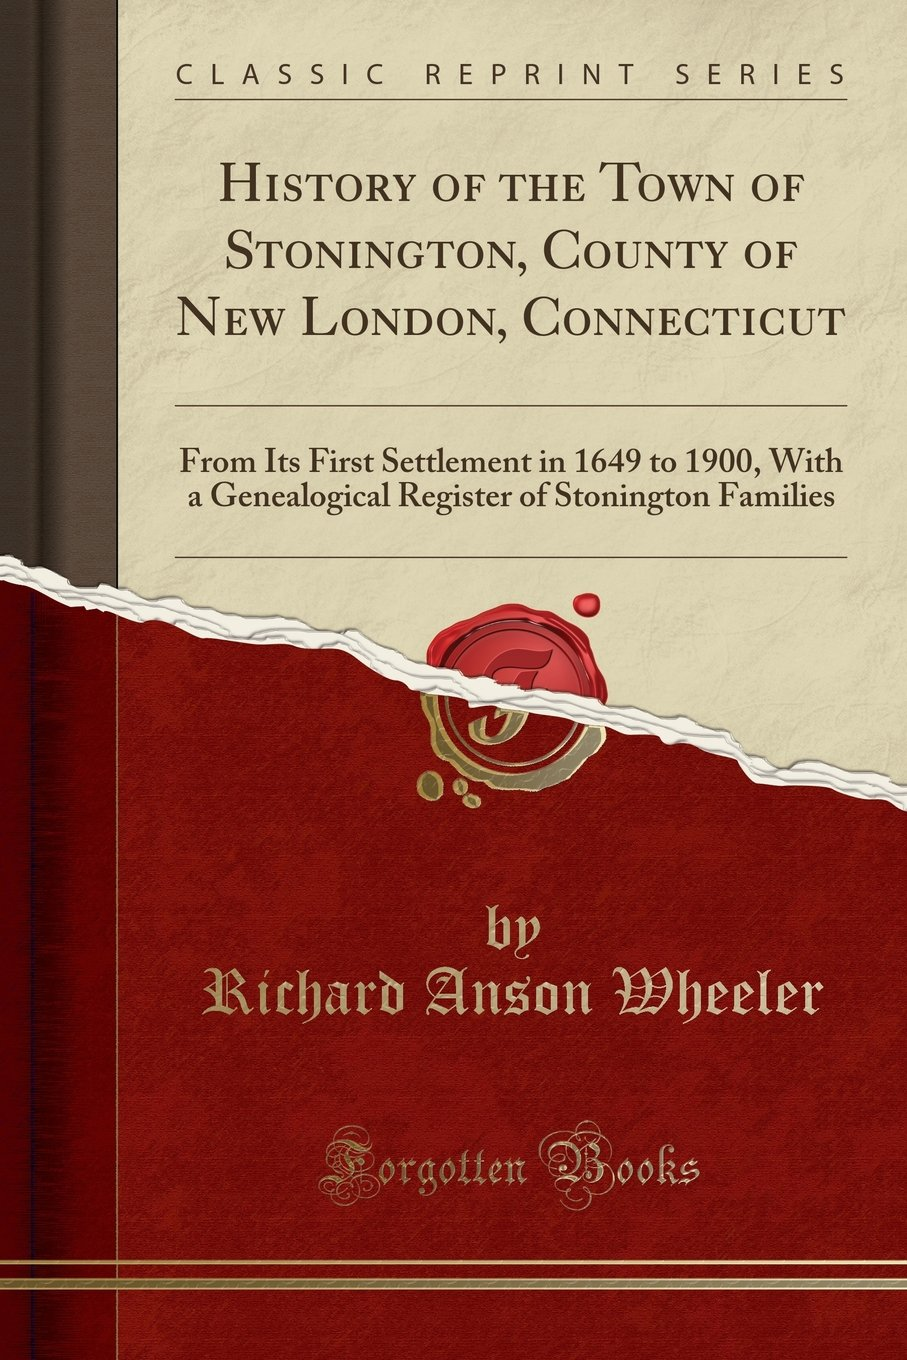 Download History of the Town of Stonington, County of New London, Connecticut: From Its First Settlement in 1649 to 1900, With a Genealogical Register of Stonington Families (Classic Reprint) pdf